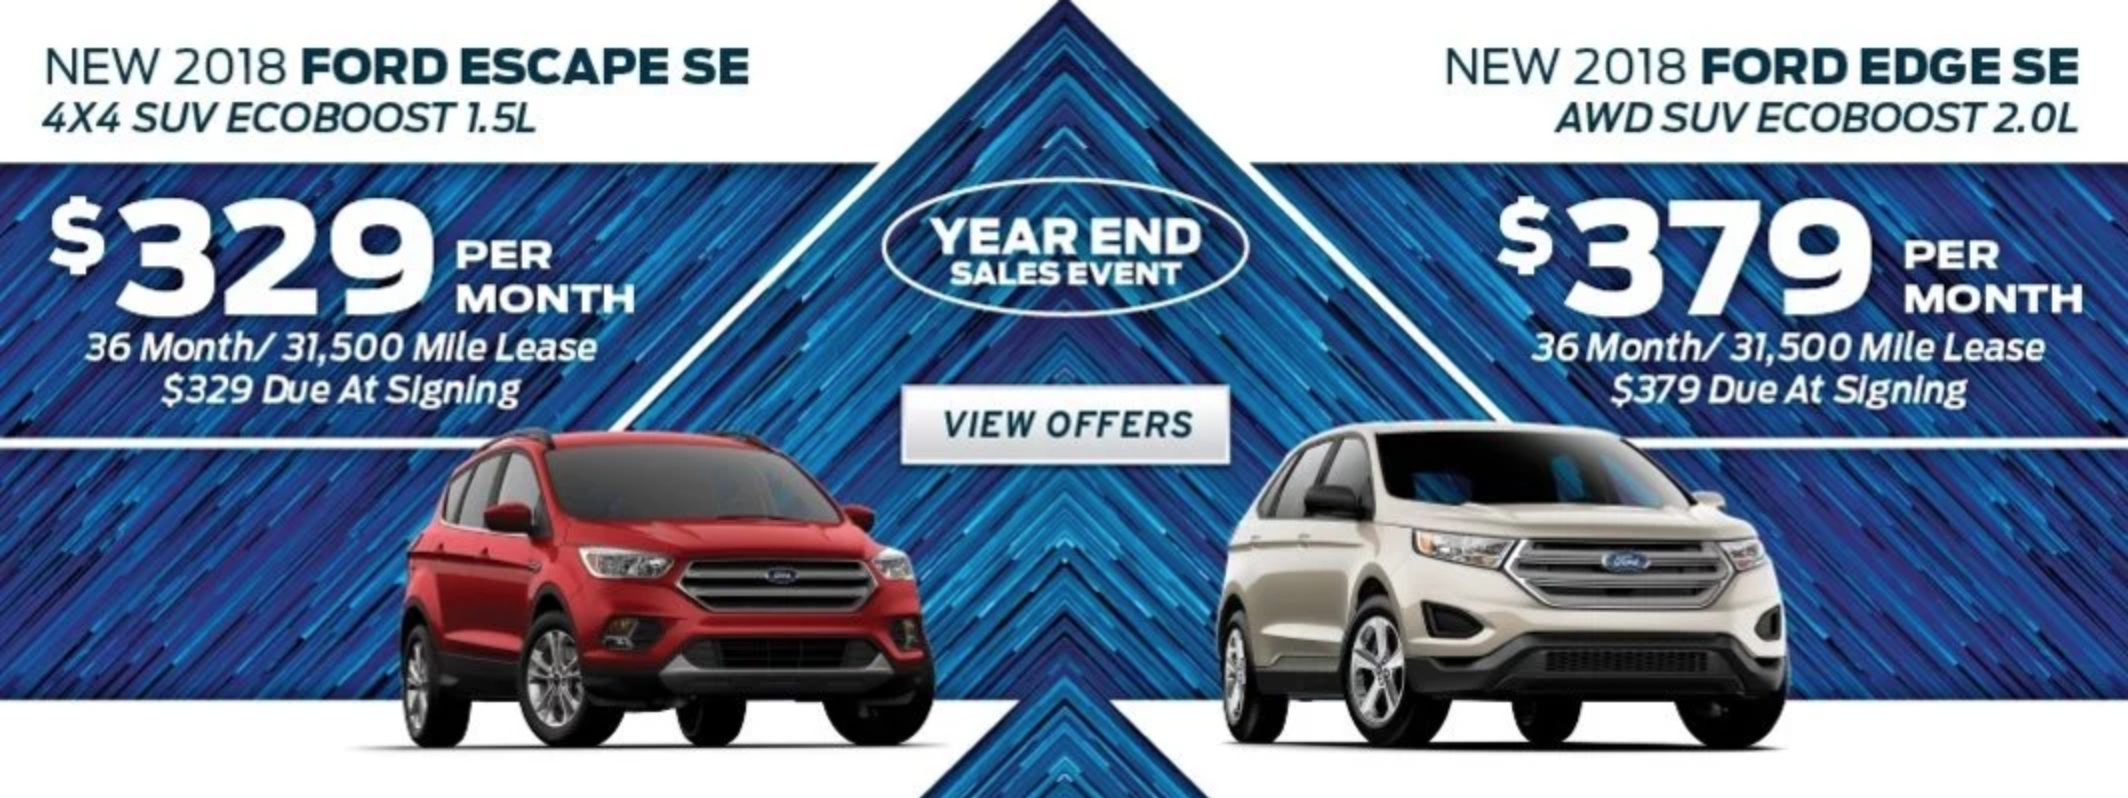 You can save on a Ford Escape or Edge this month at Eide Ford!